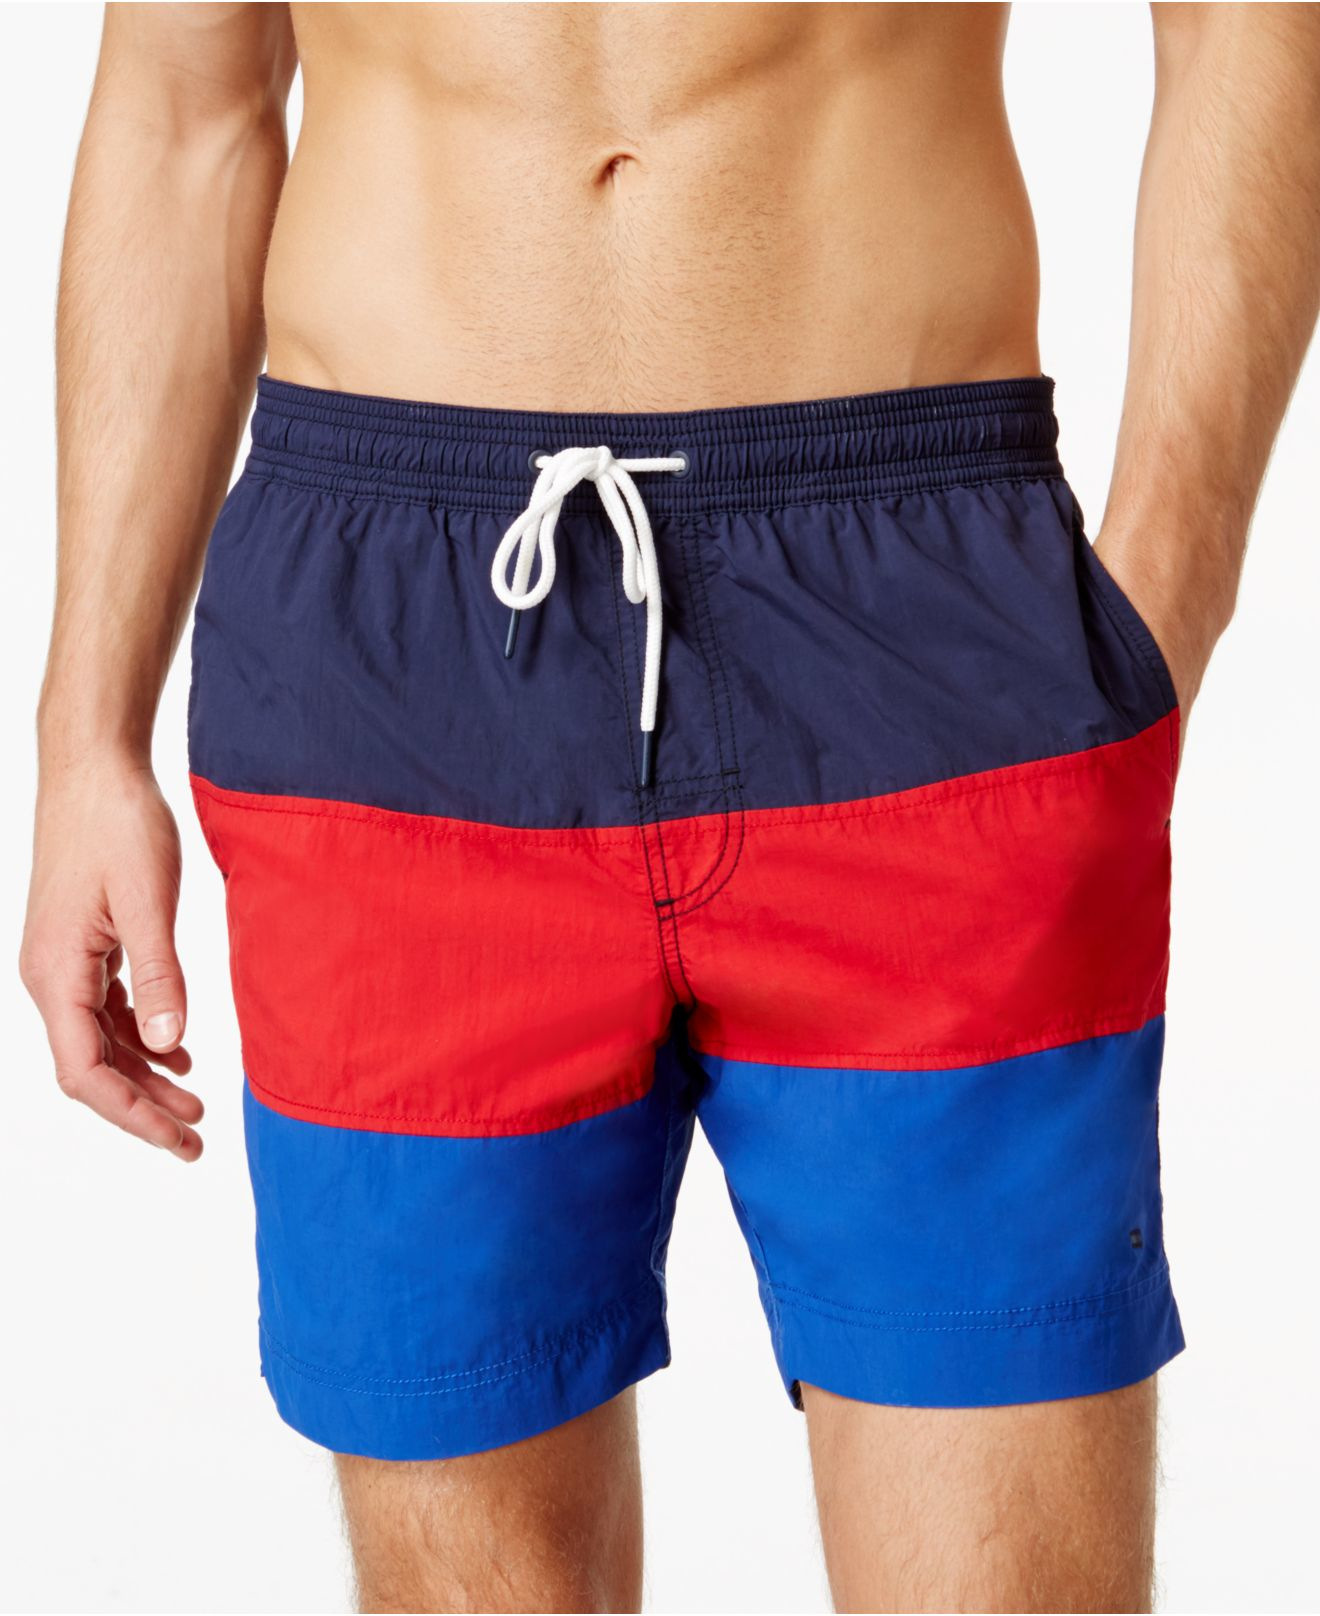 6e1d999d18 Tommy Hilfiger Waterford Colorblocked Drawstring Swim Trunks in Blue ...